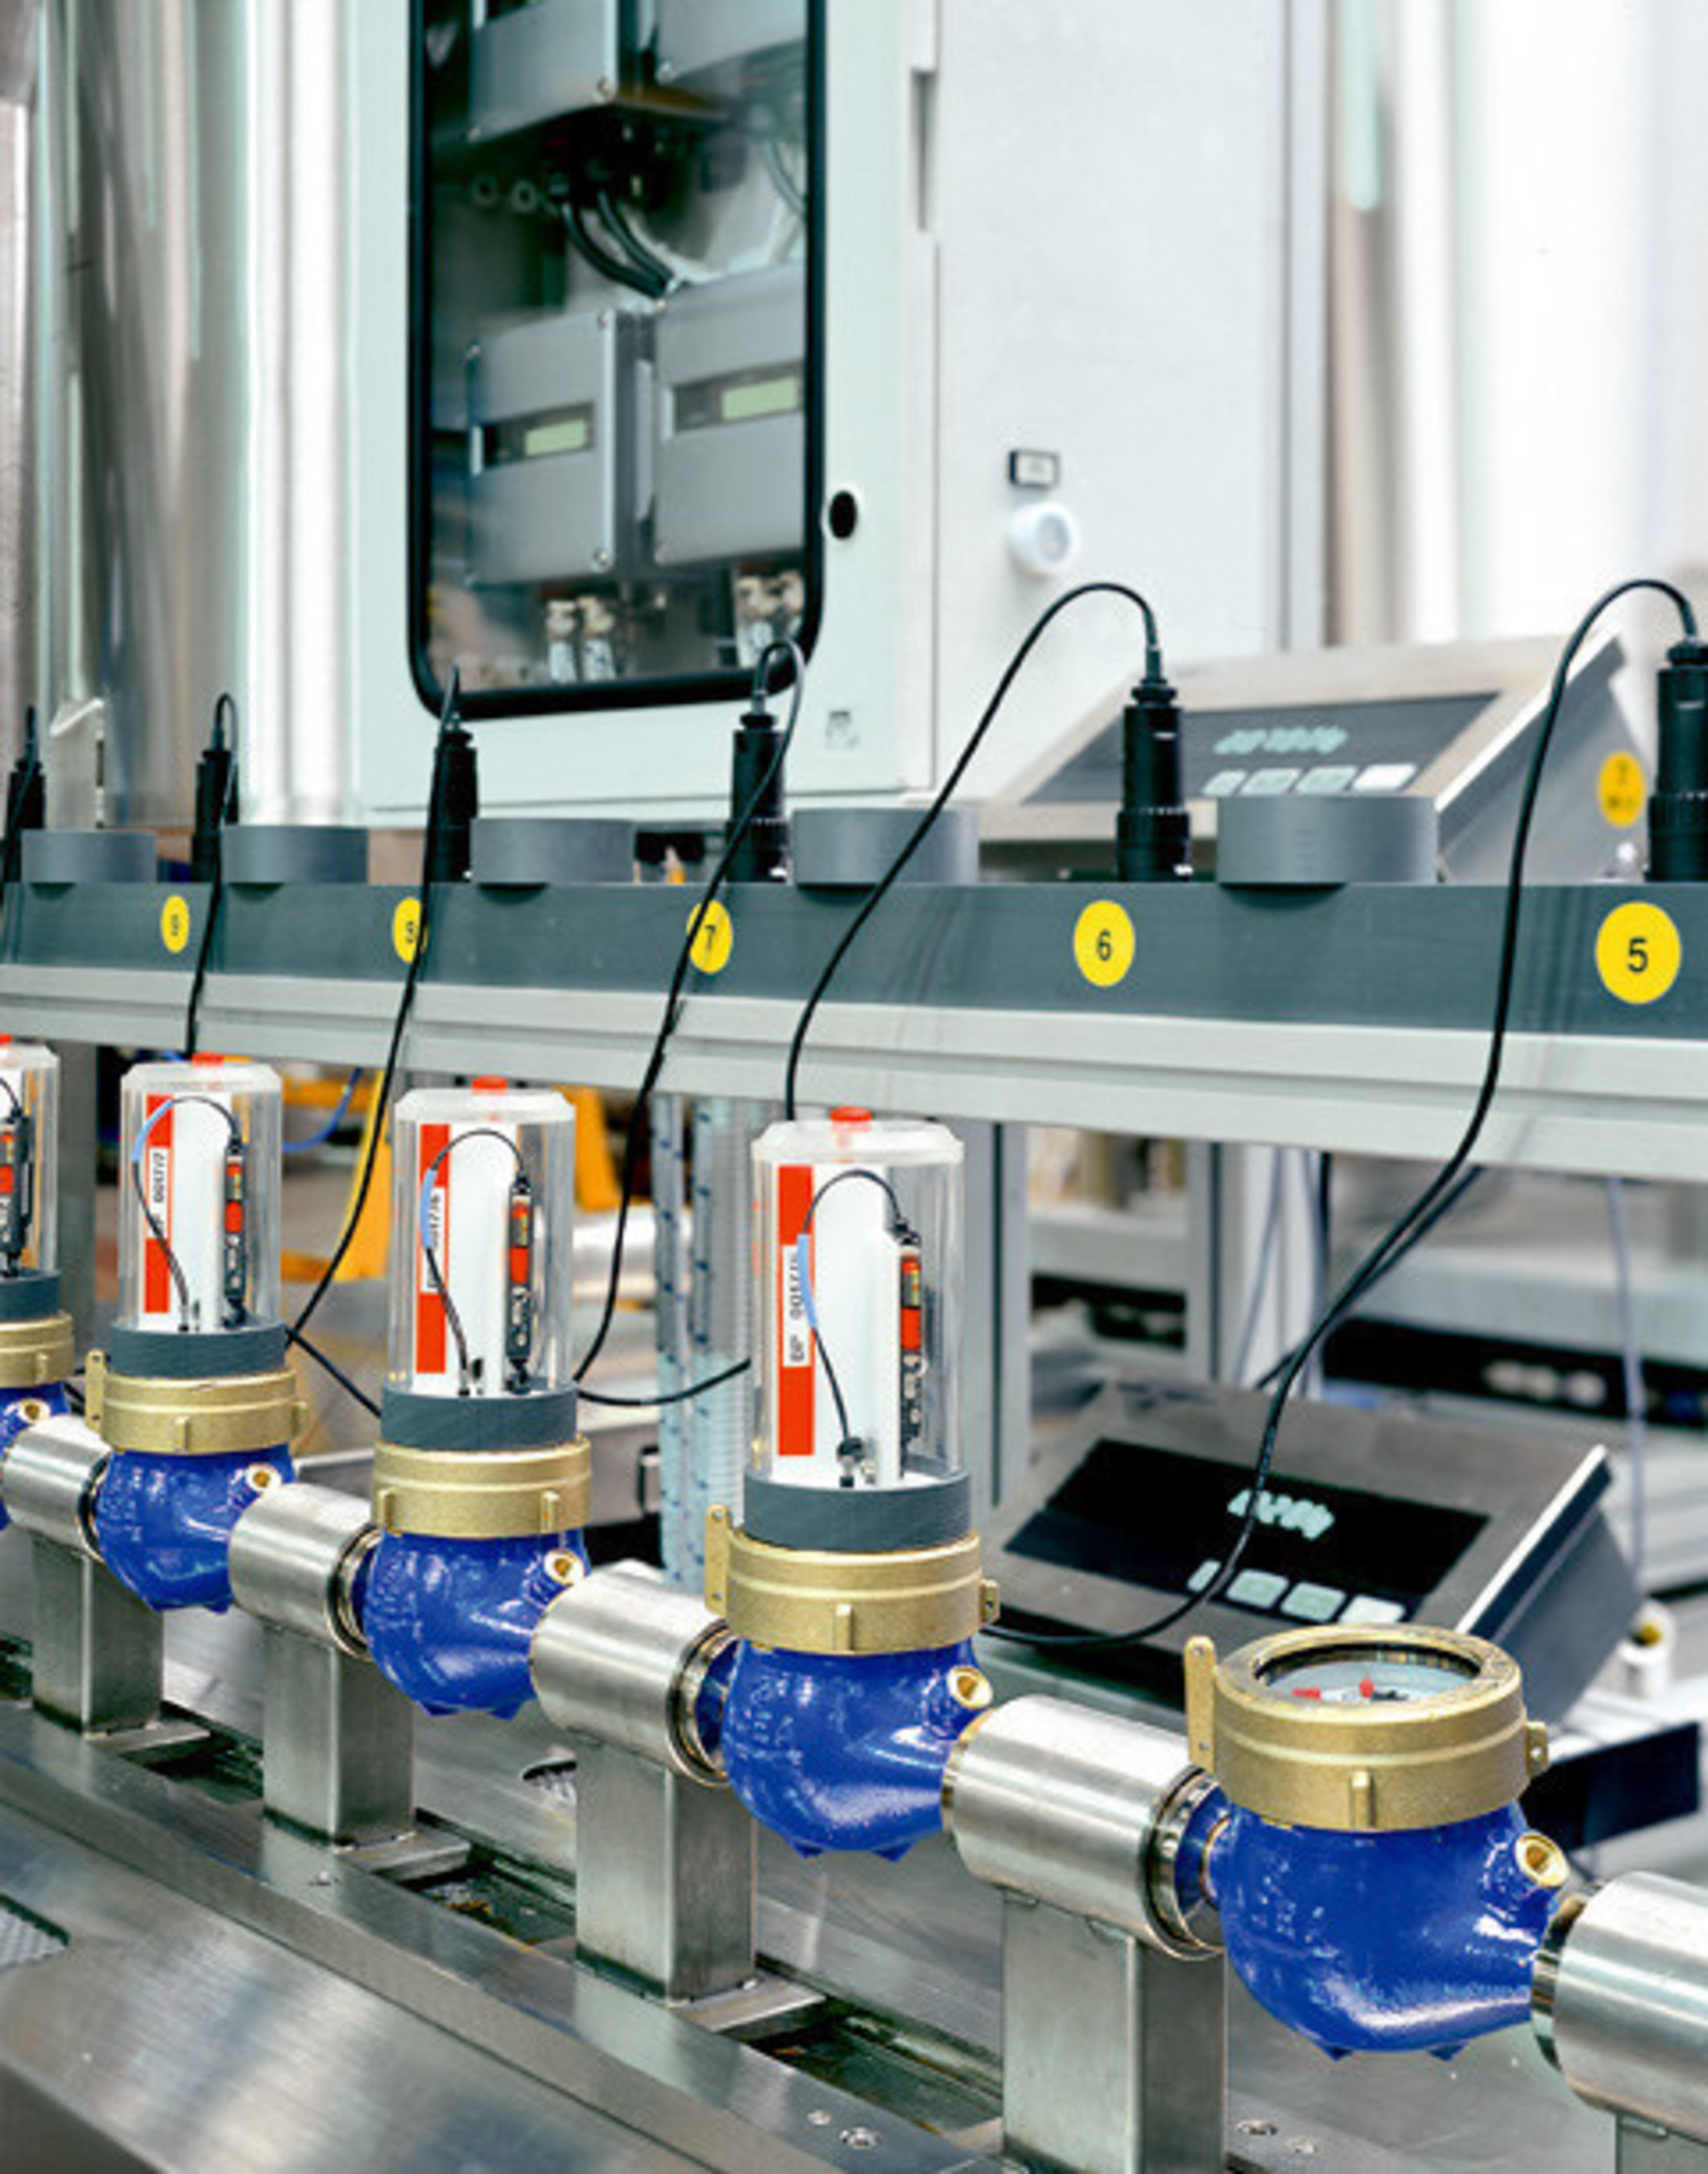 Maddalena SpA Leverage Infortrend EonStor DS Storage Systems to Achieve Business Continuity for 24/7 Production Facility